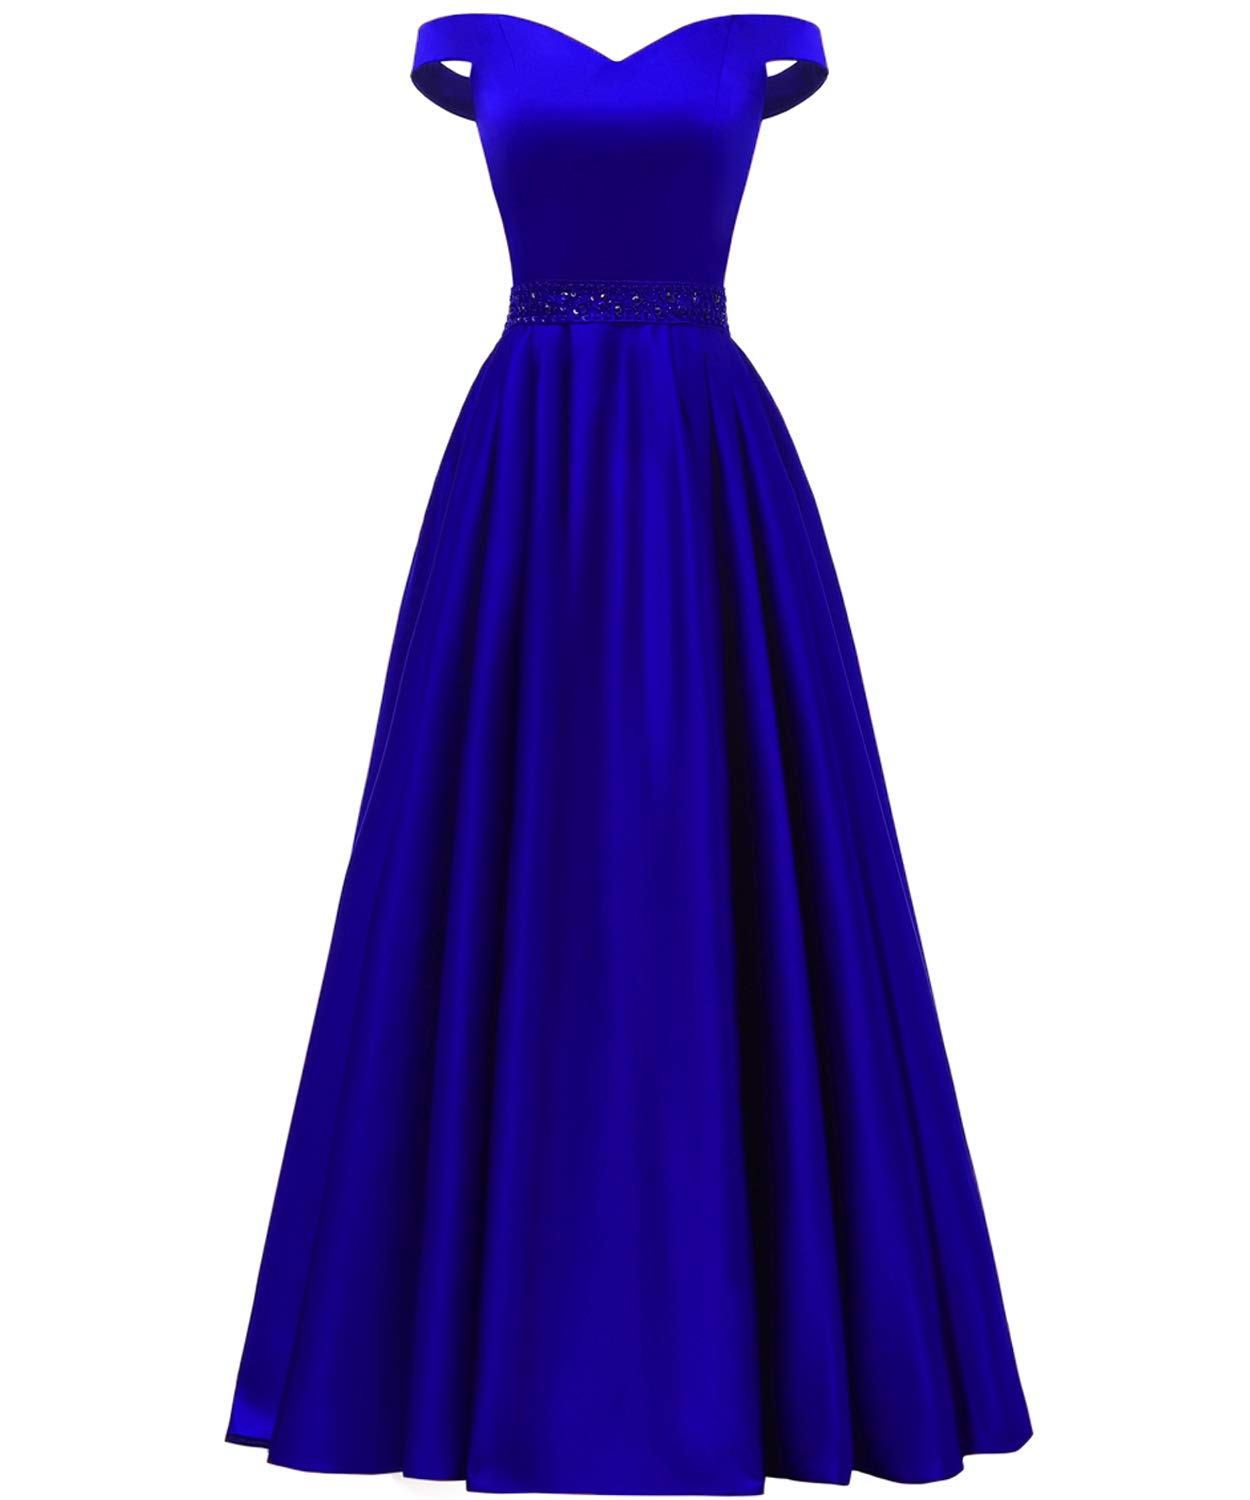 YORFORMALS Off The Shoulder A-line Beaded Satin Plus Size Prom Dress Long  Evening Ball Gown with Pockets Size 26 Royal Blue